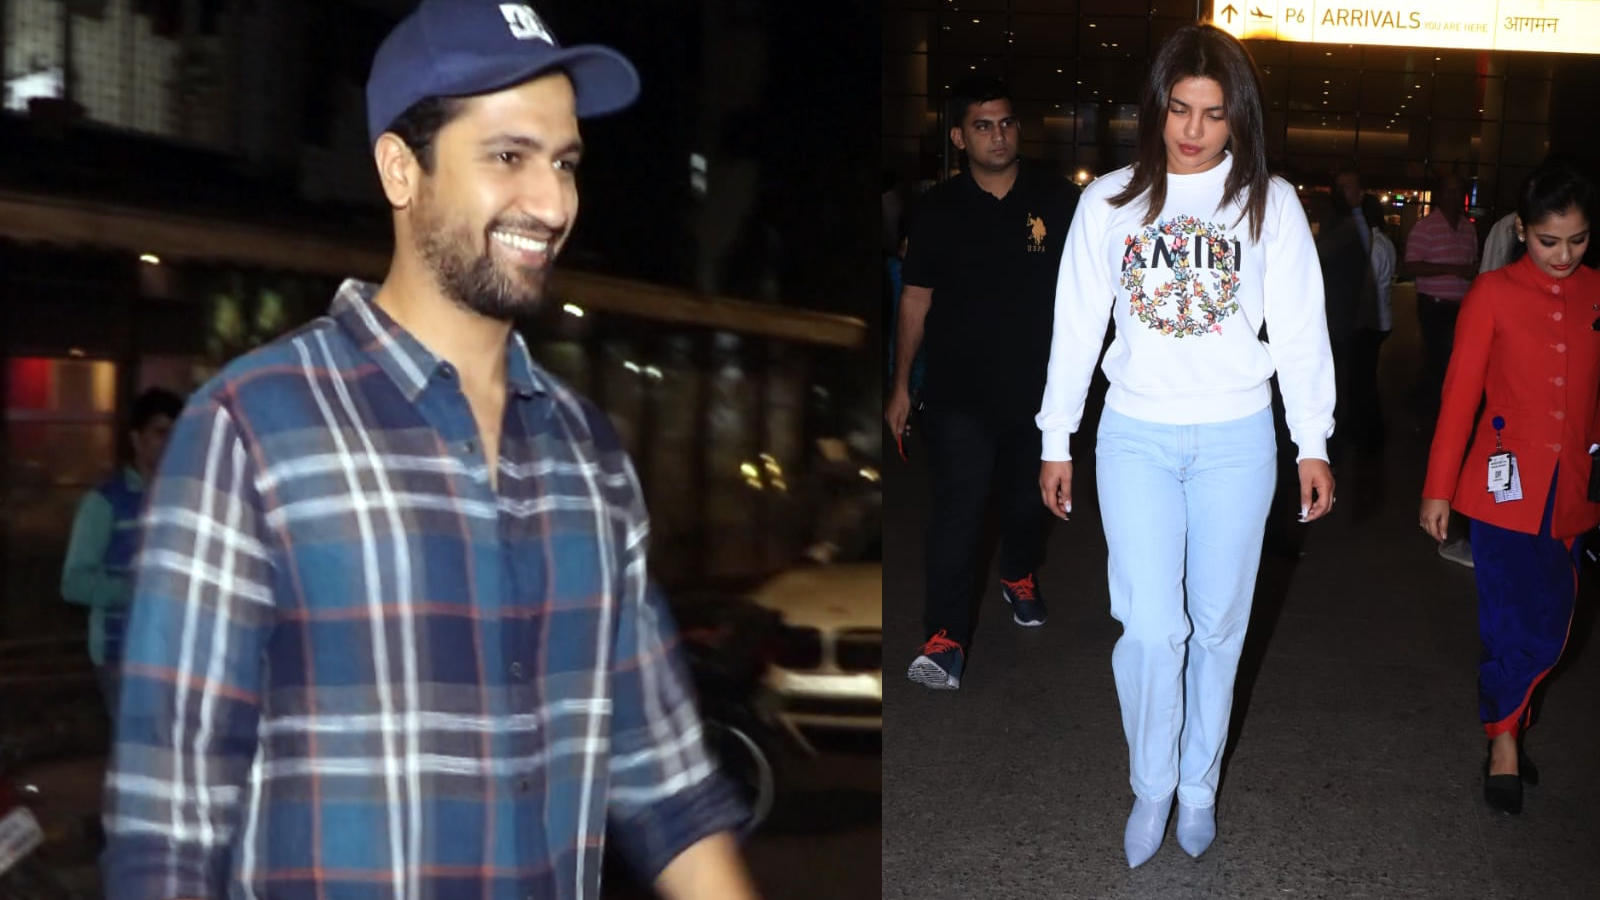 priyanka-chopras-latest-airport-look-is-all-about-comfort-bhoot-star-vicky-kaushal-get-papped-outside-a-restaurant-and-more-